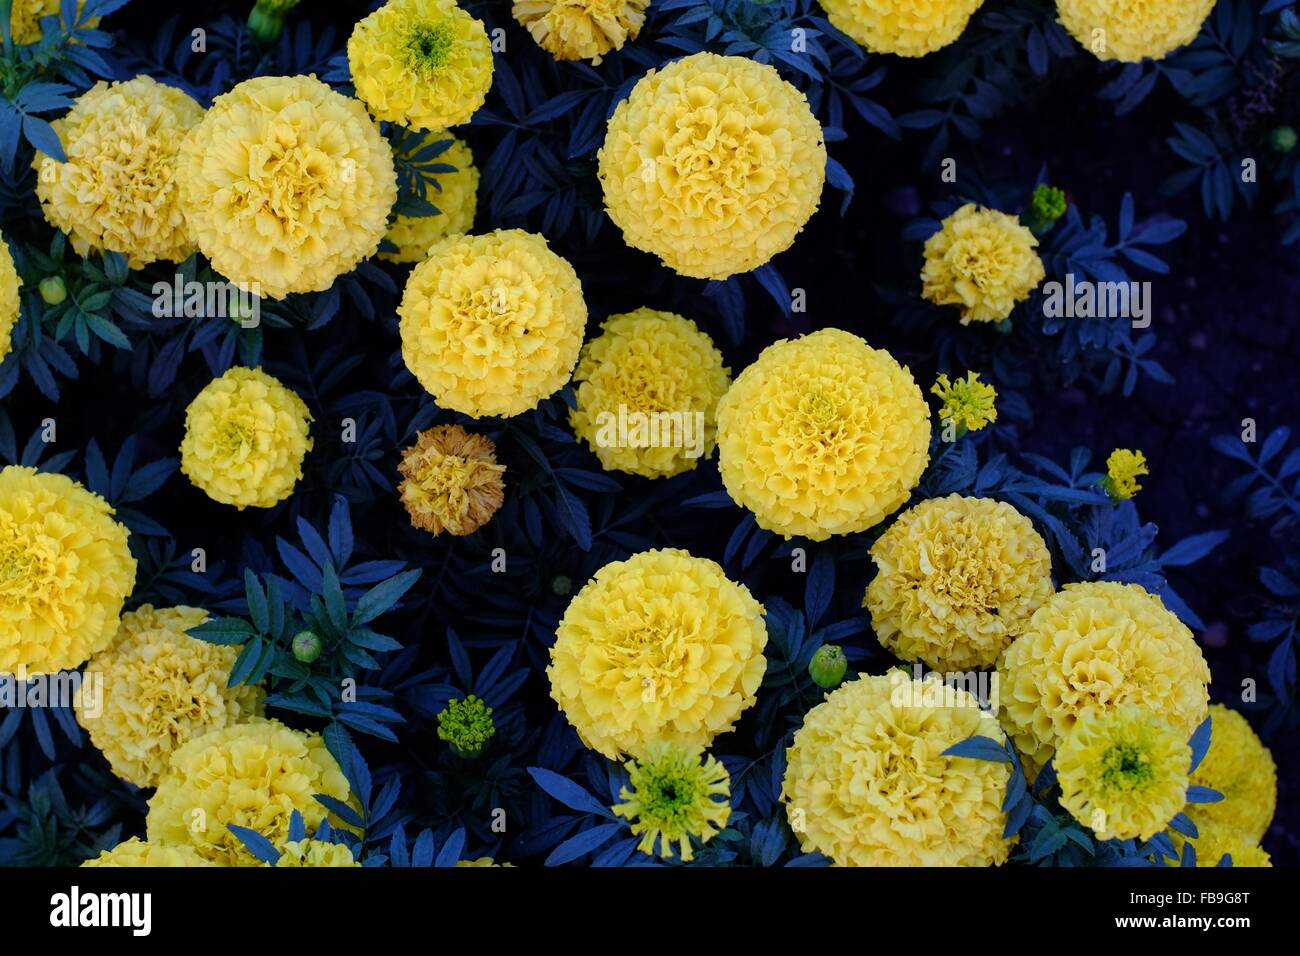 Round yellow flowers stock photos round yellow flowers stock round yellow flowers on a dark blue background foliage stock image mightylinksfo